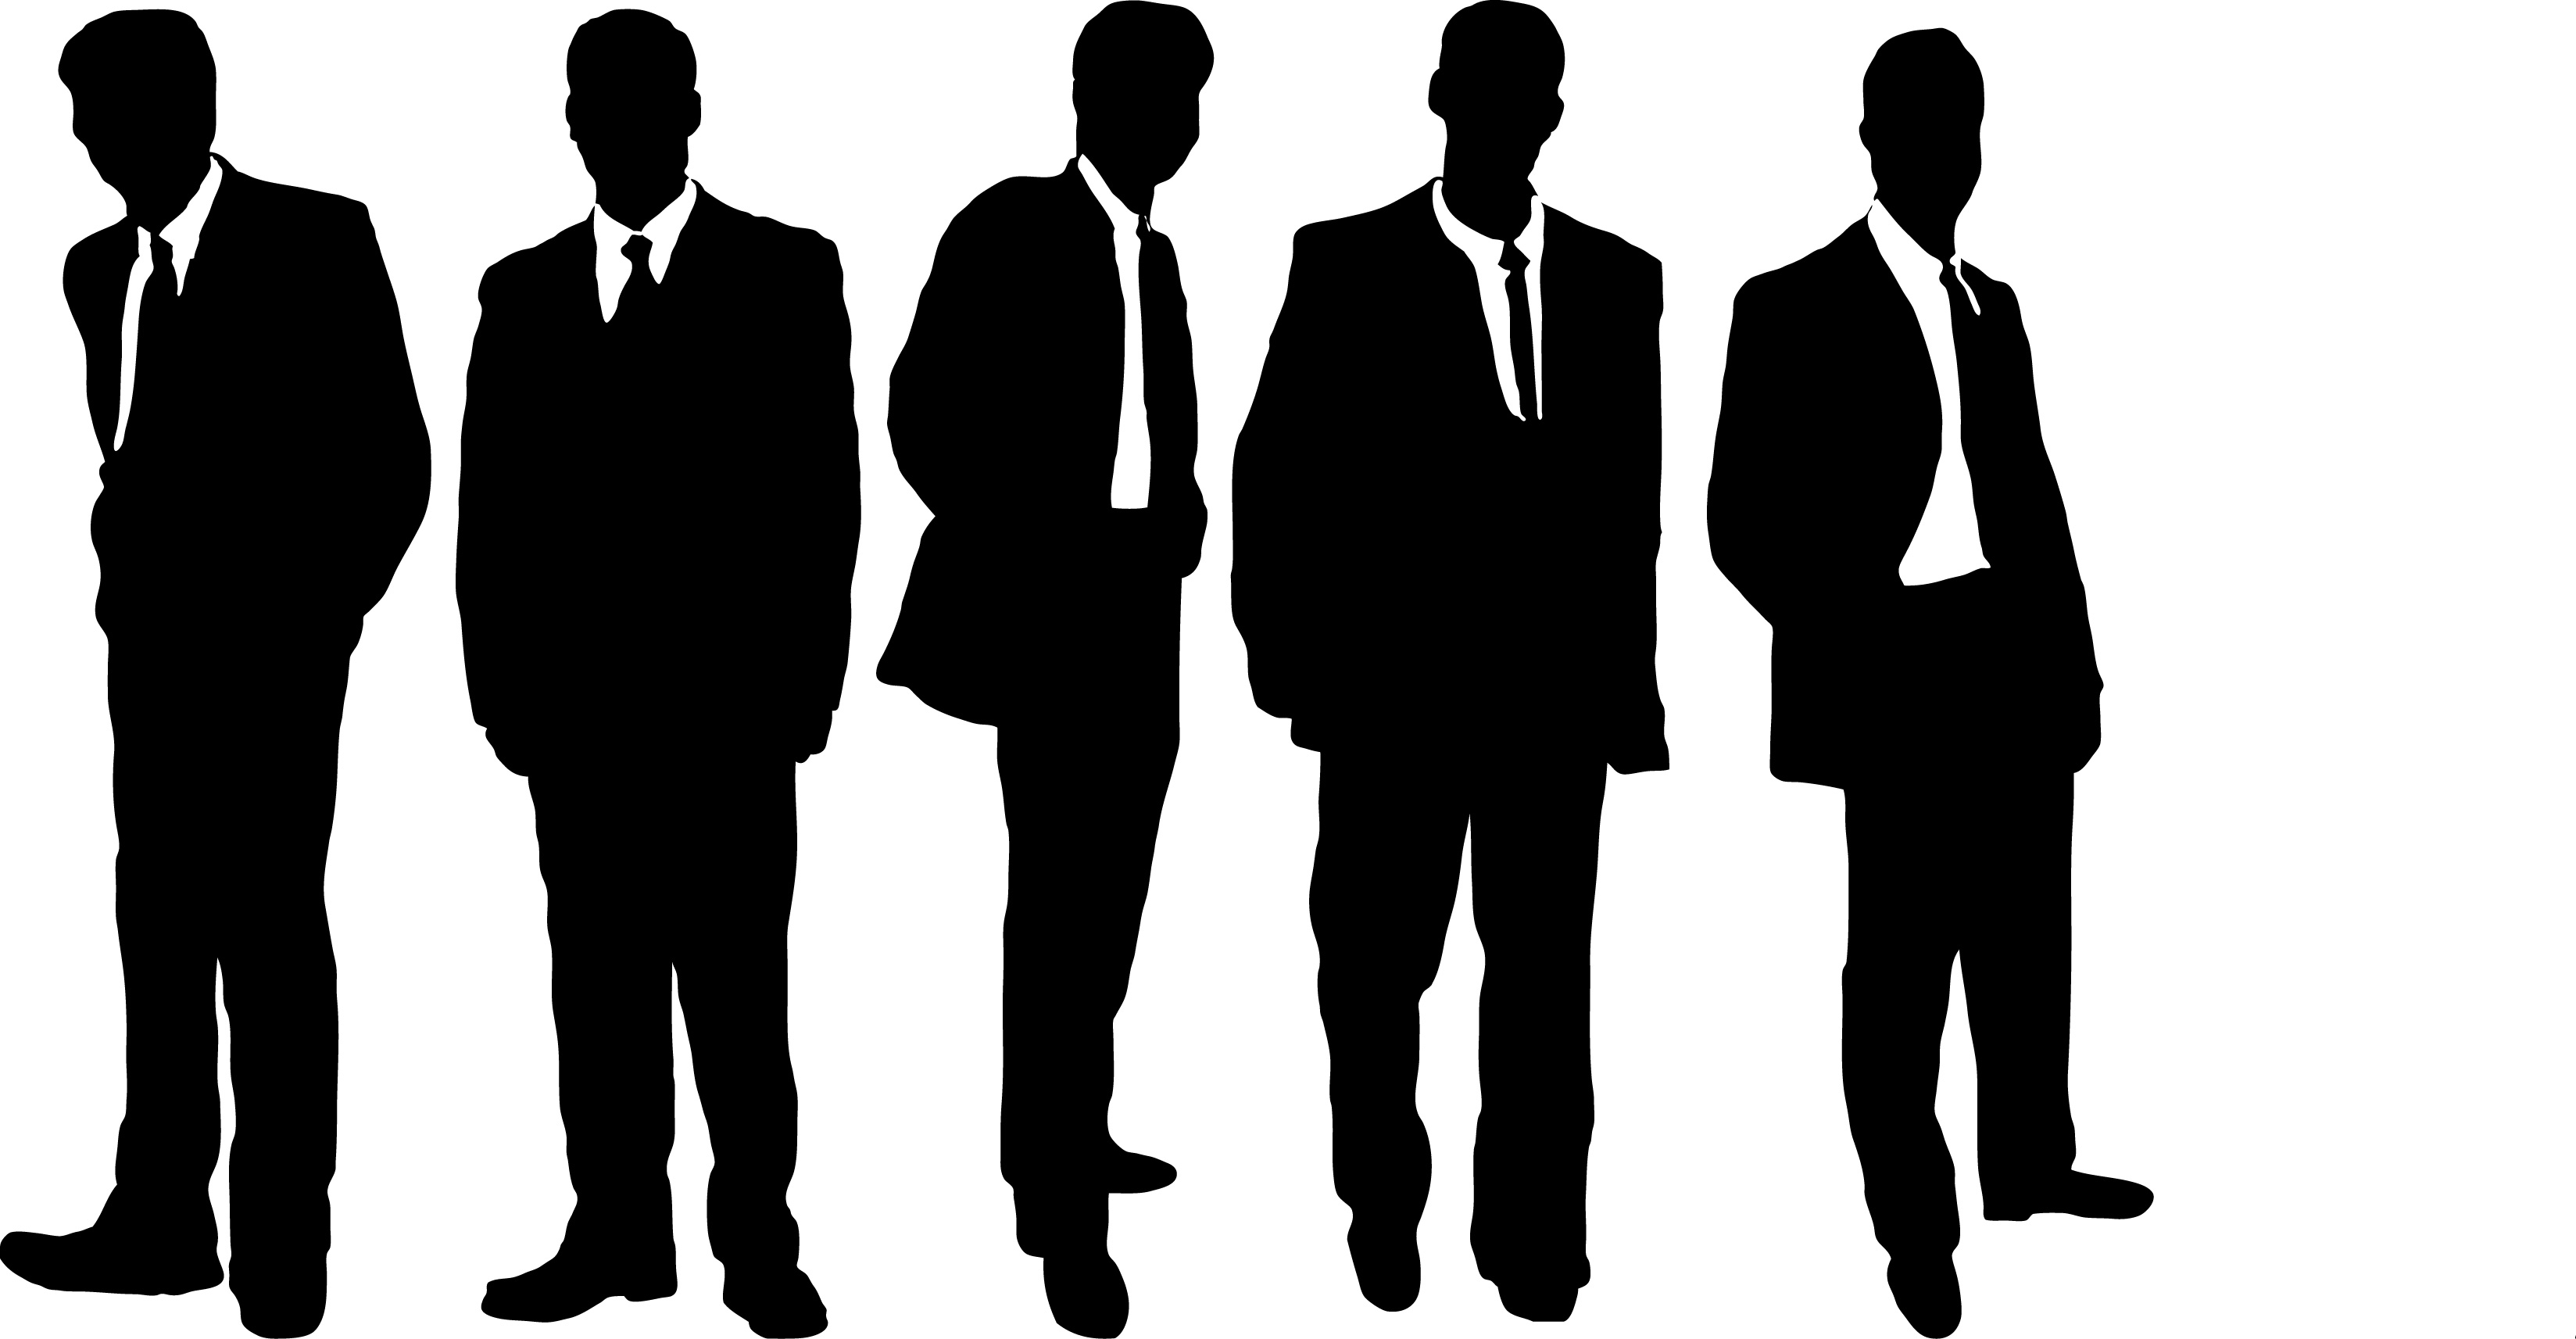 Crowd Of People Silhouette | Free download best Crowd Of People ... for Business People Silhouette Png  34eri